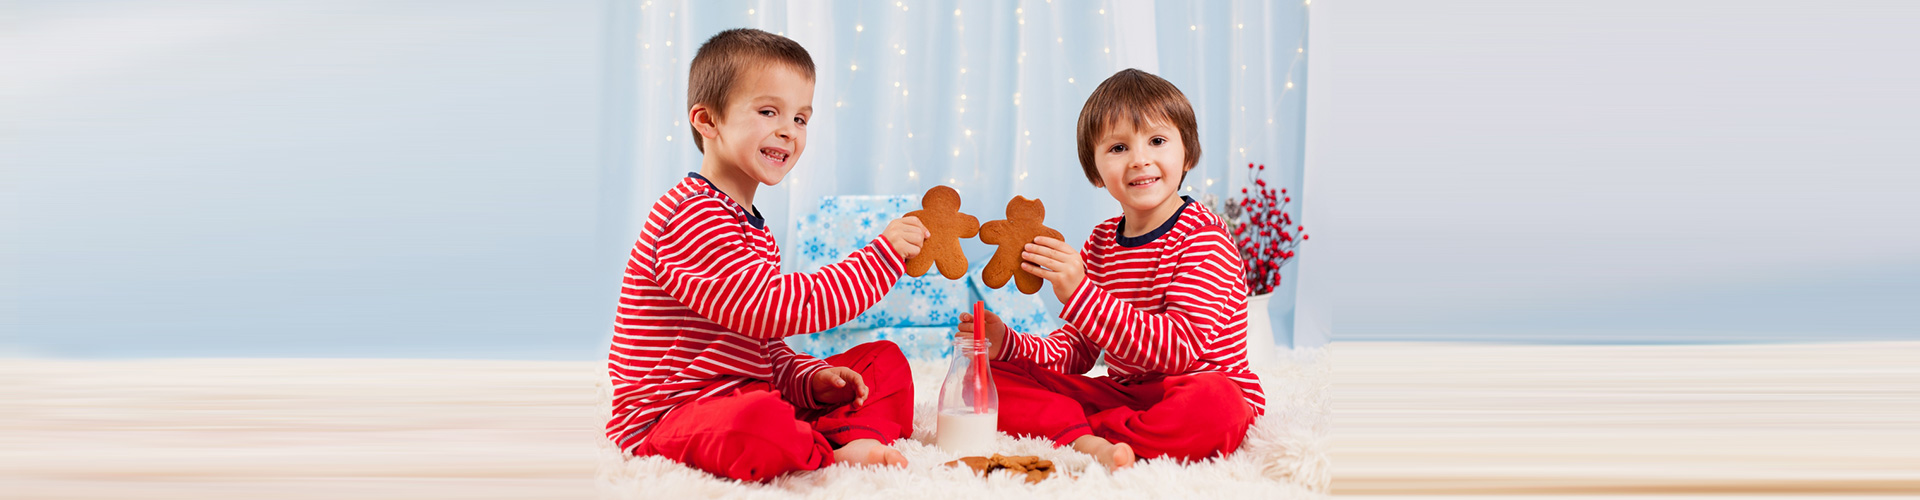 two boys holding gingerbread man